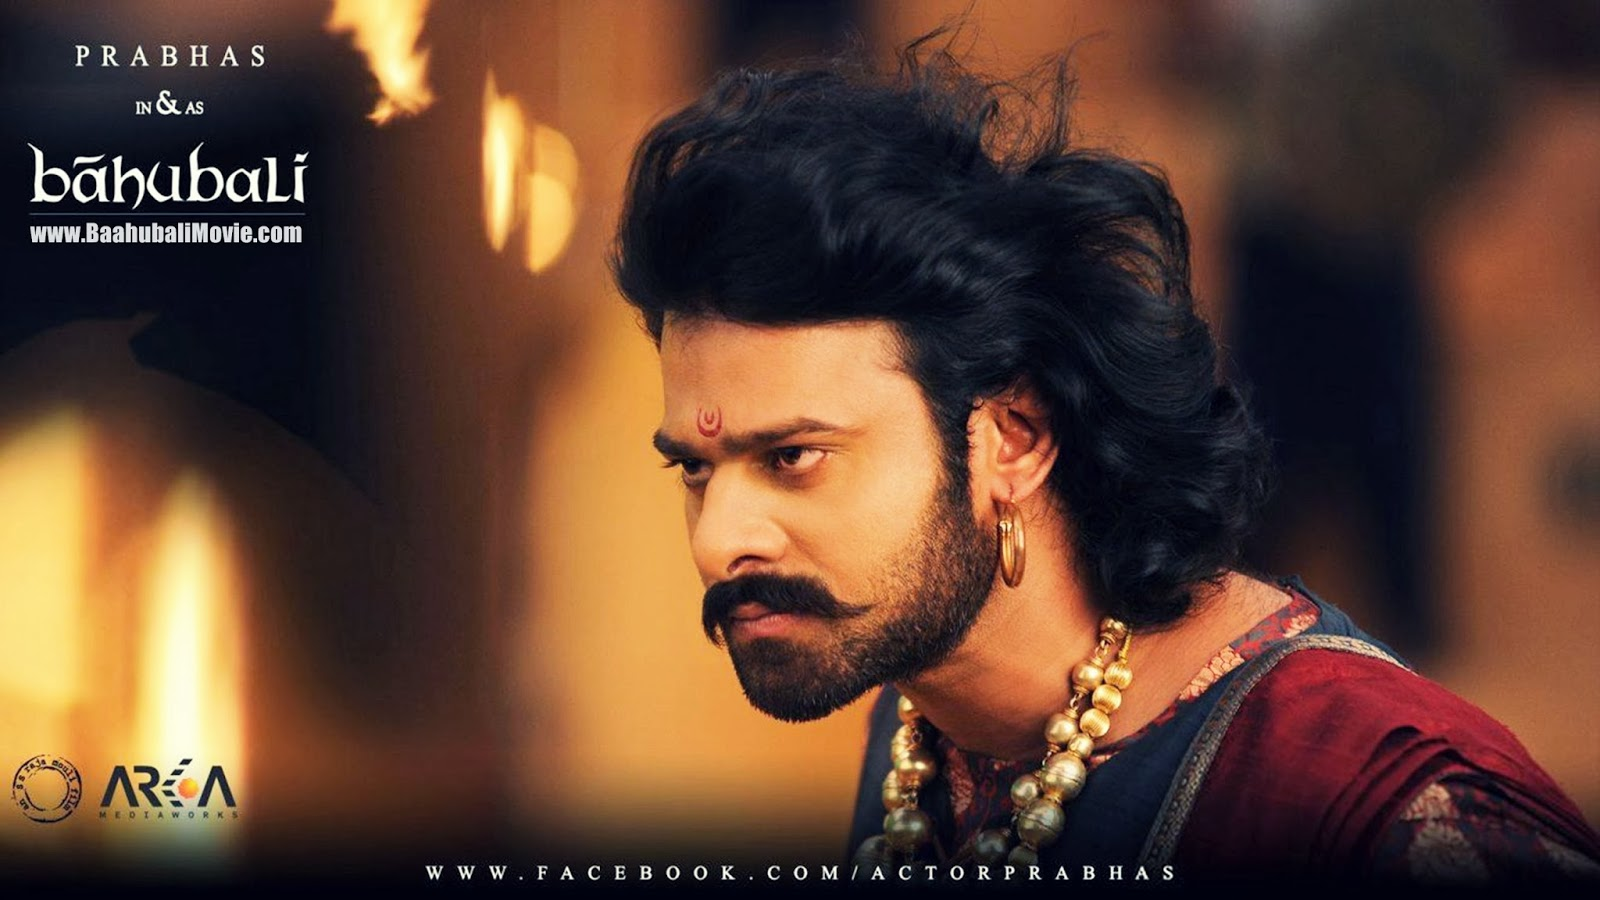 prabhas baahubali movie: prabhas baahubali movie wallpapers